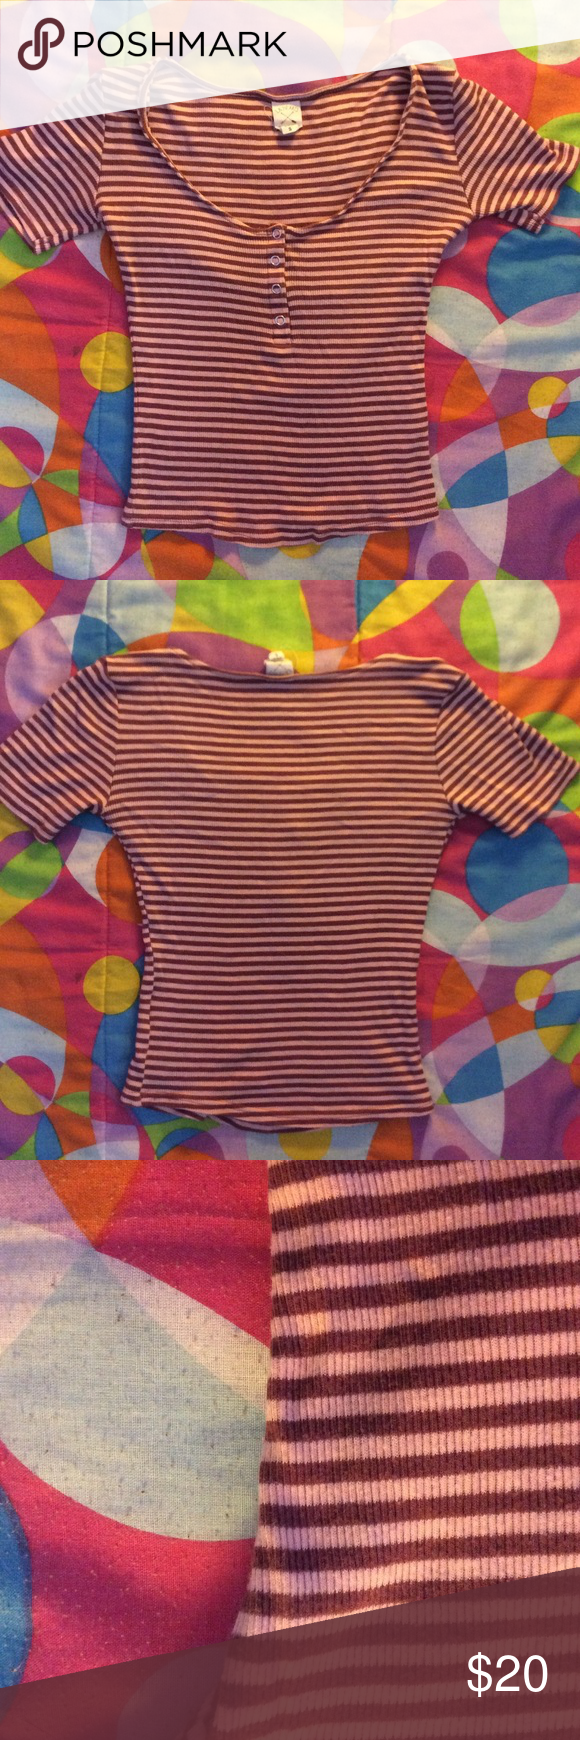 LA hearts stripped top!❤️ Pink and red stripes! Super cute and comfortable  Great condition and quality... Feel free to ask questions! ✨ LA Hearts Tops